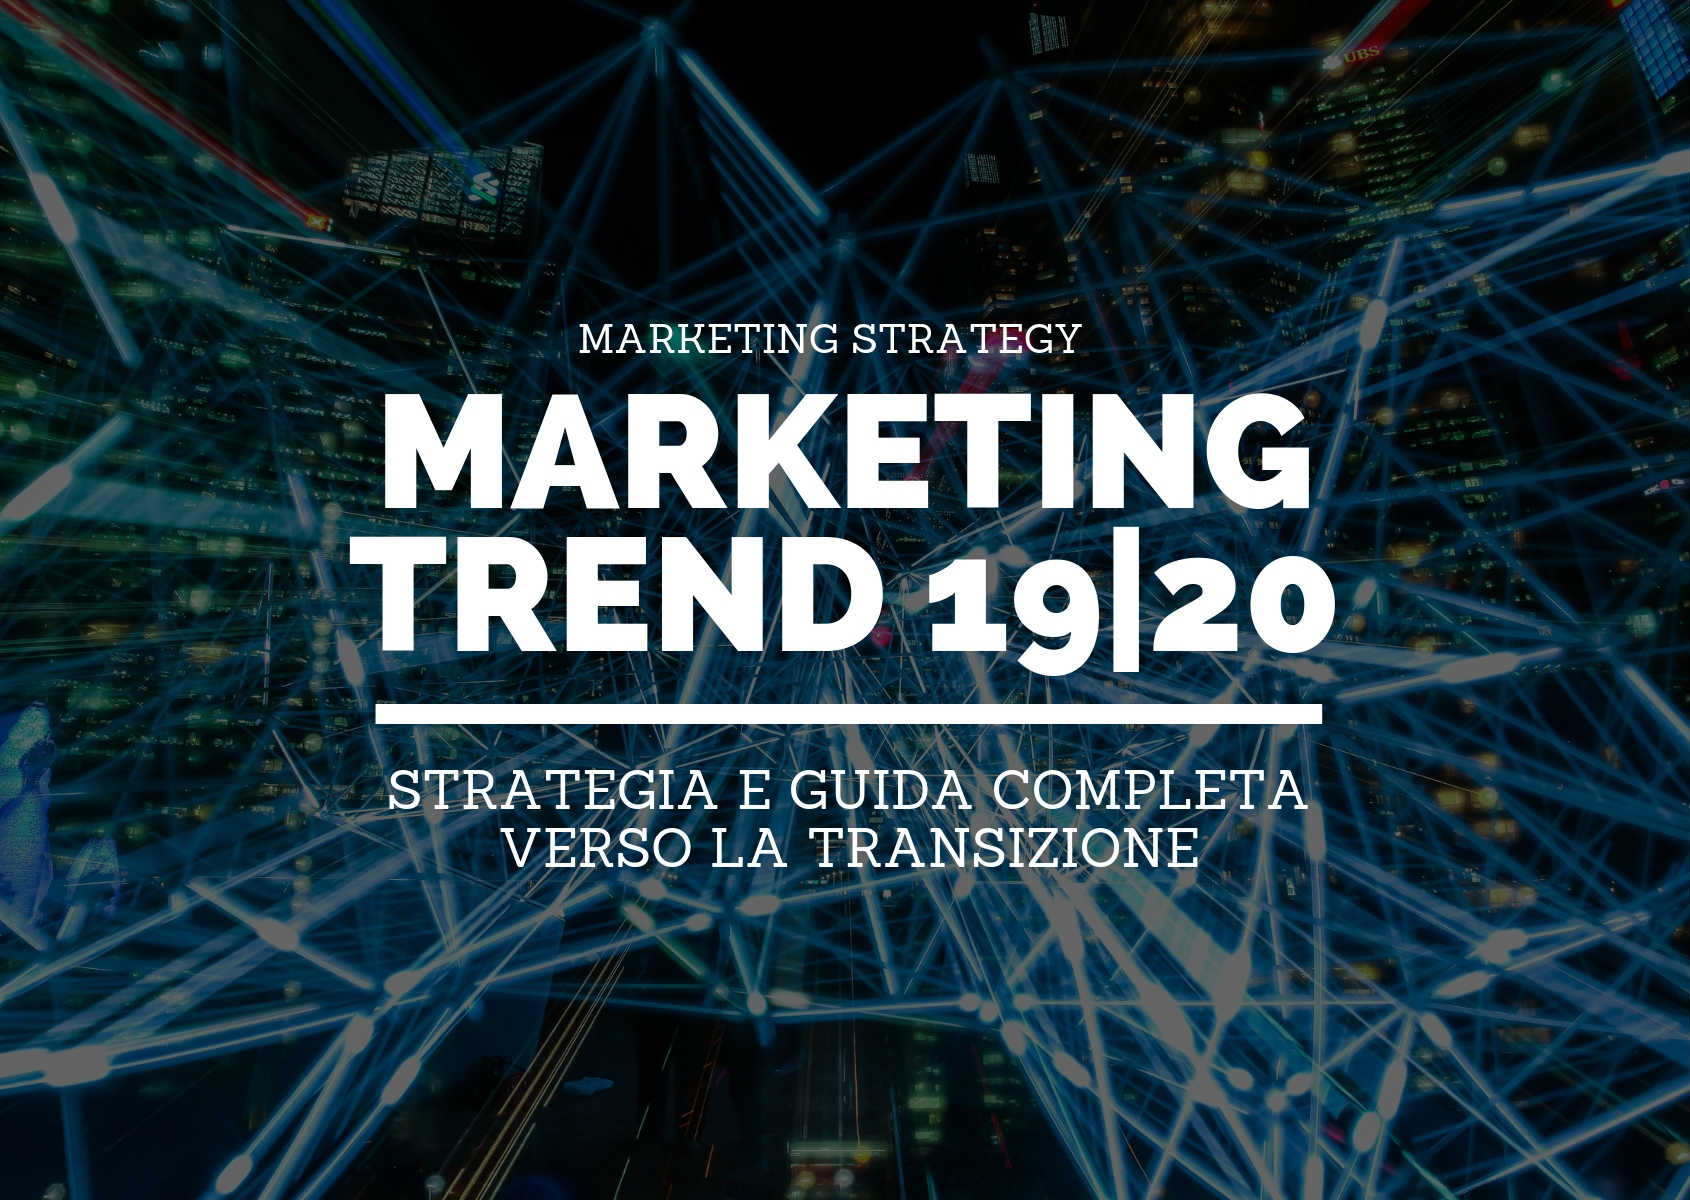 Marketing trend 2019/2020: strategia e guida completa verso la transizione